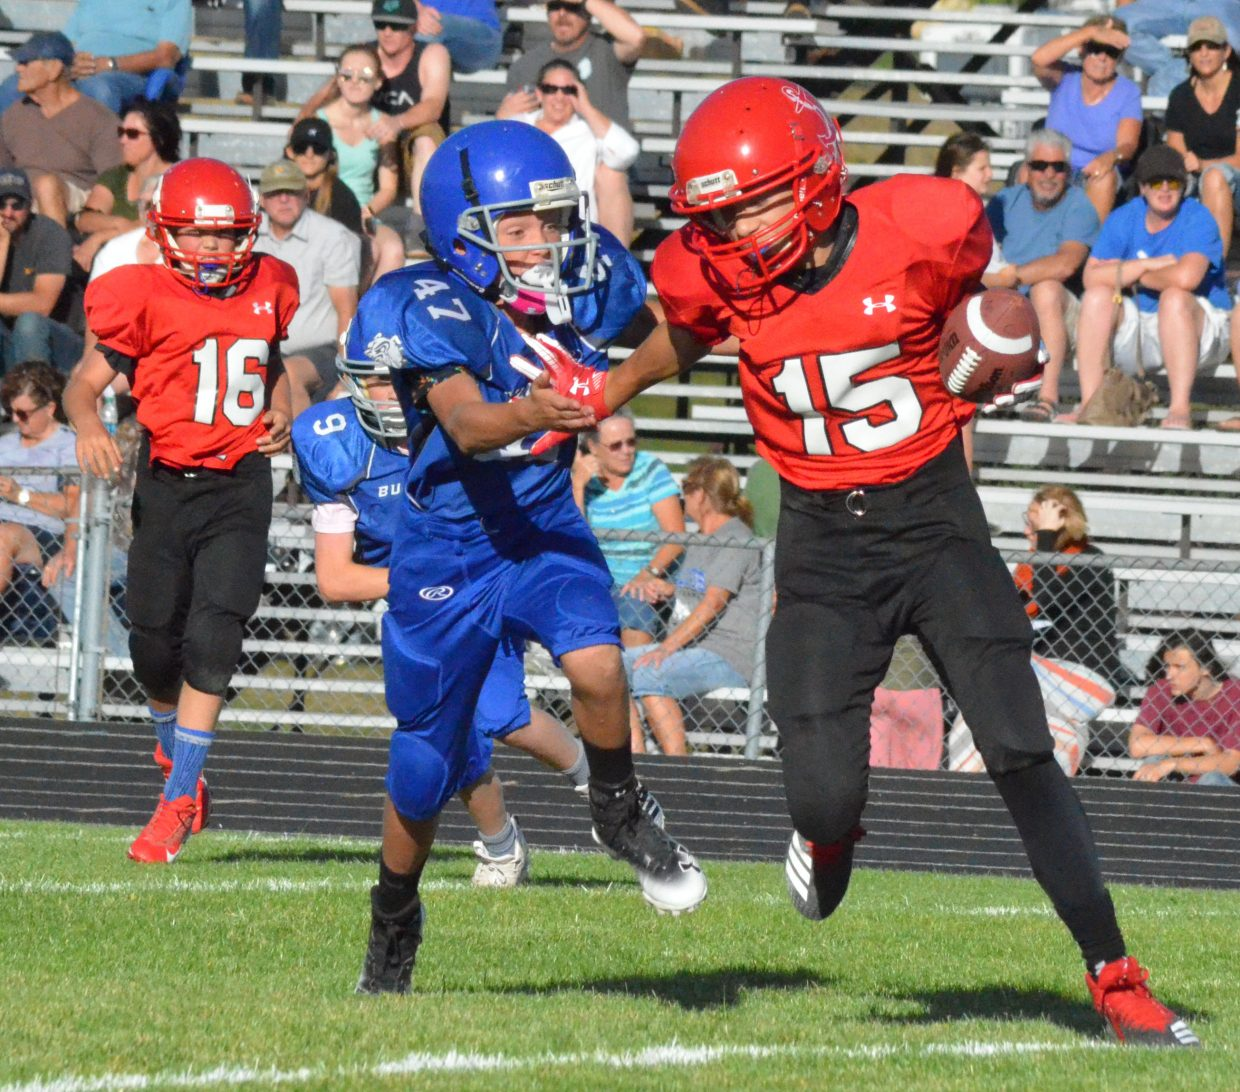 Craig Middle's School's Kenny Fredrickson looks to gain a sack against Steamboat Springs.